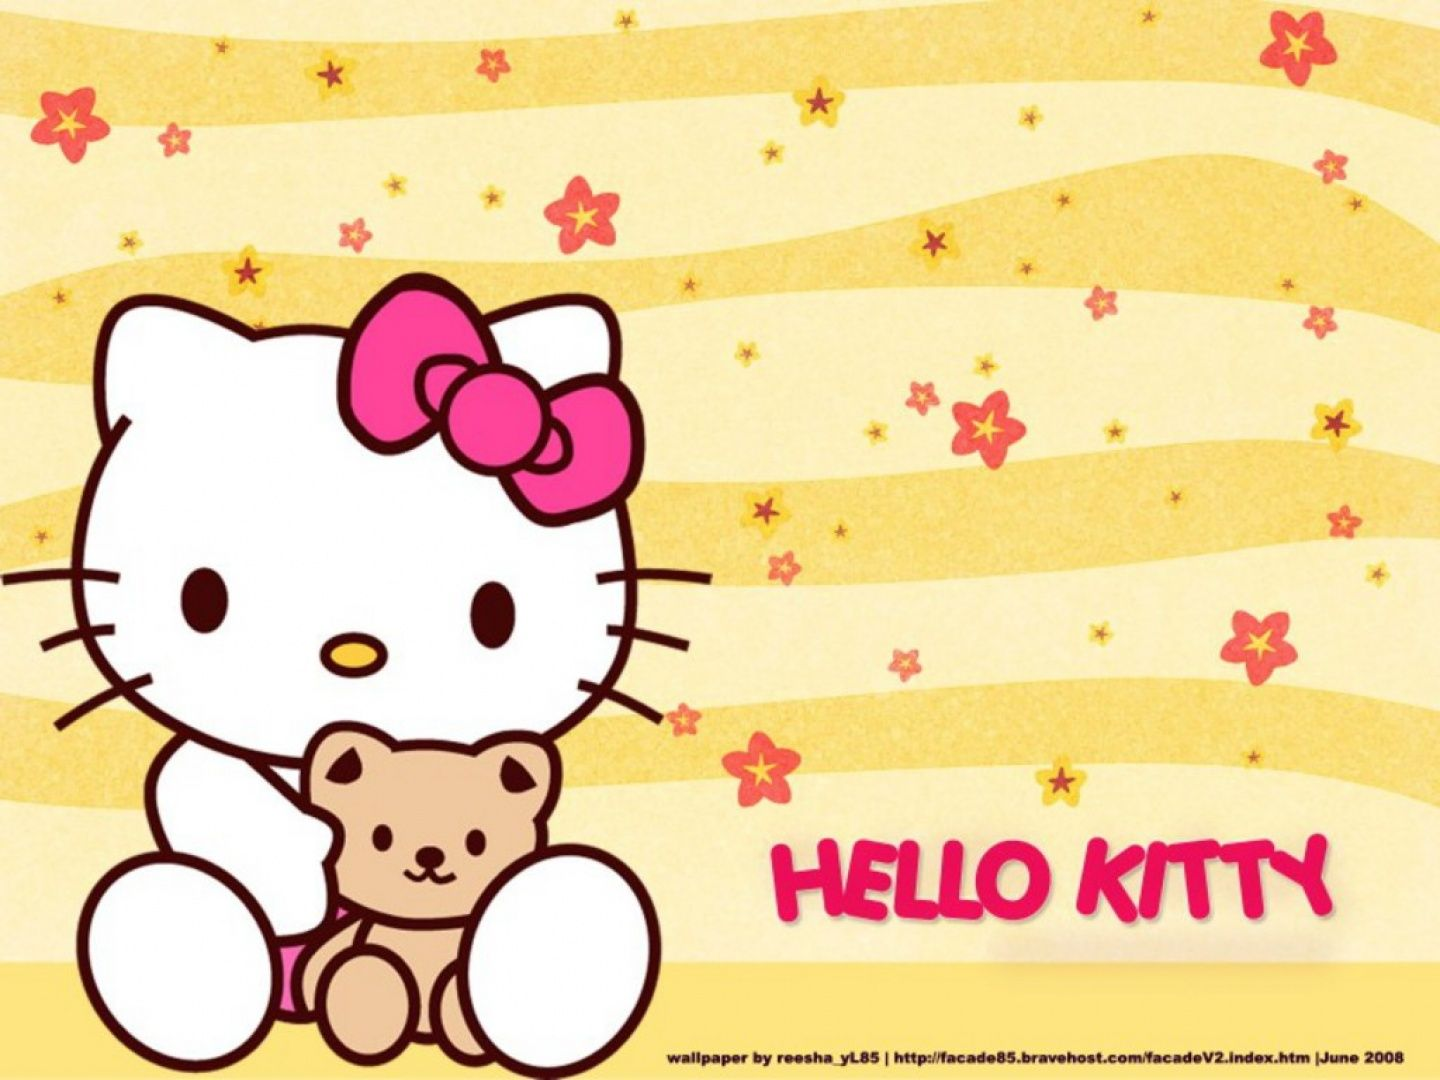 Hello Kitty Wallpaper Hello Kitty Wallpaper Hello Kitty Wallpaper Hello Kitty Art Hello Kitty